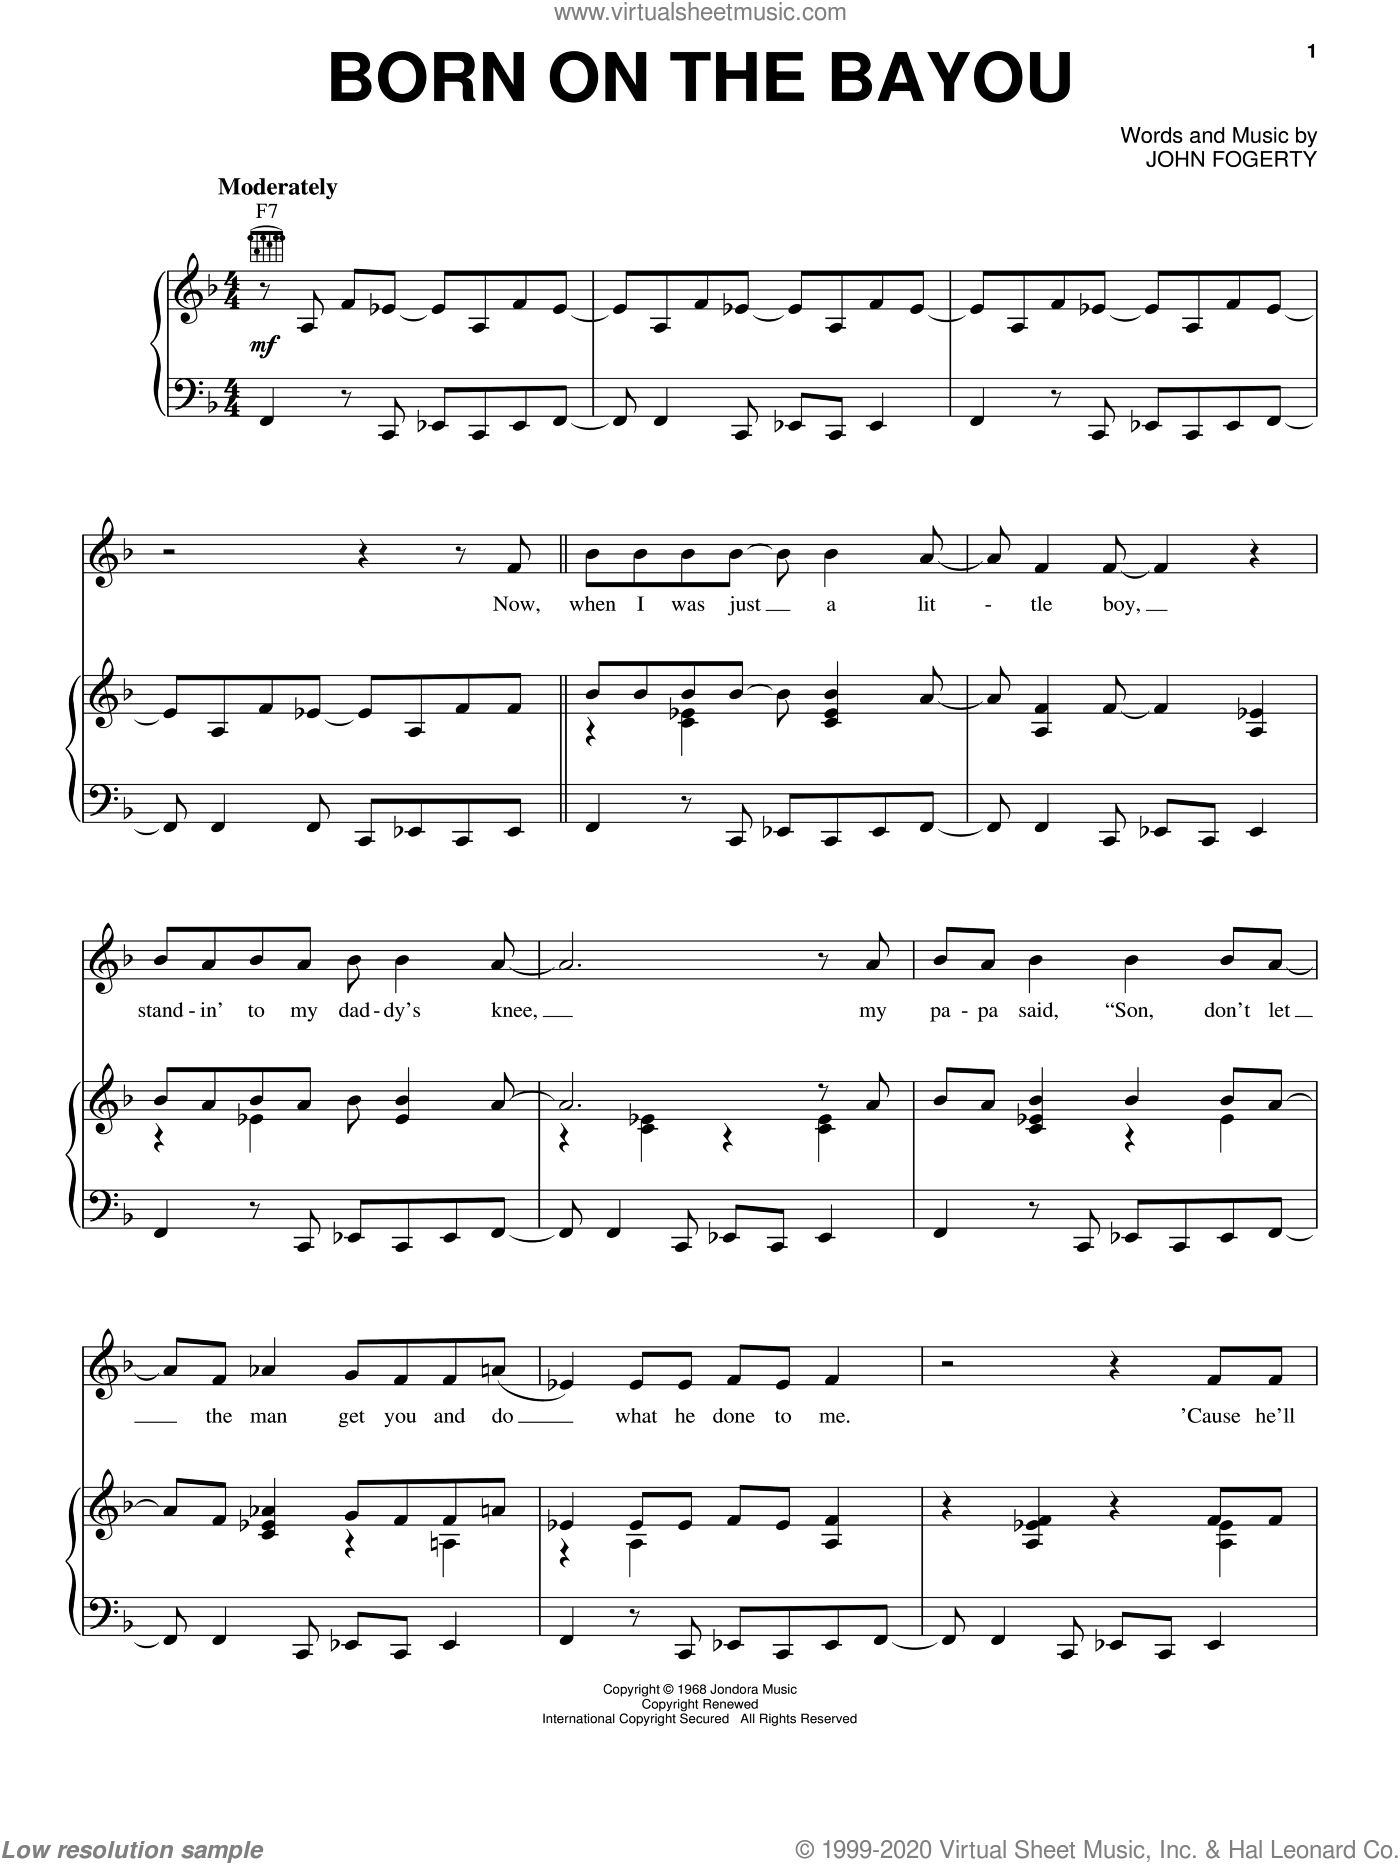 Born On The Bayou sheet music for voice, piano or guitar by John Fogerty